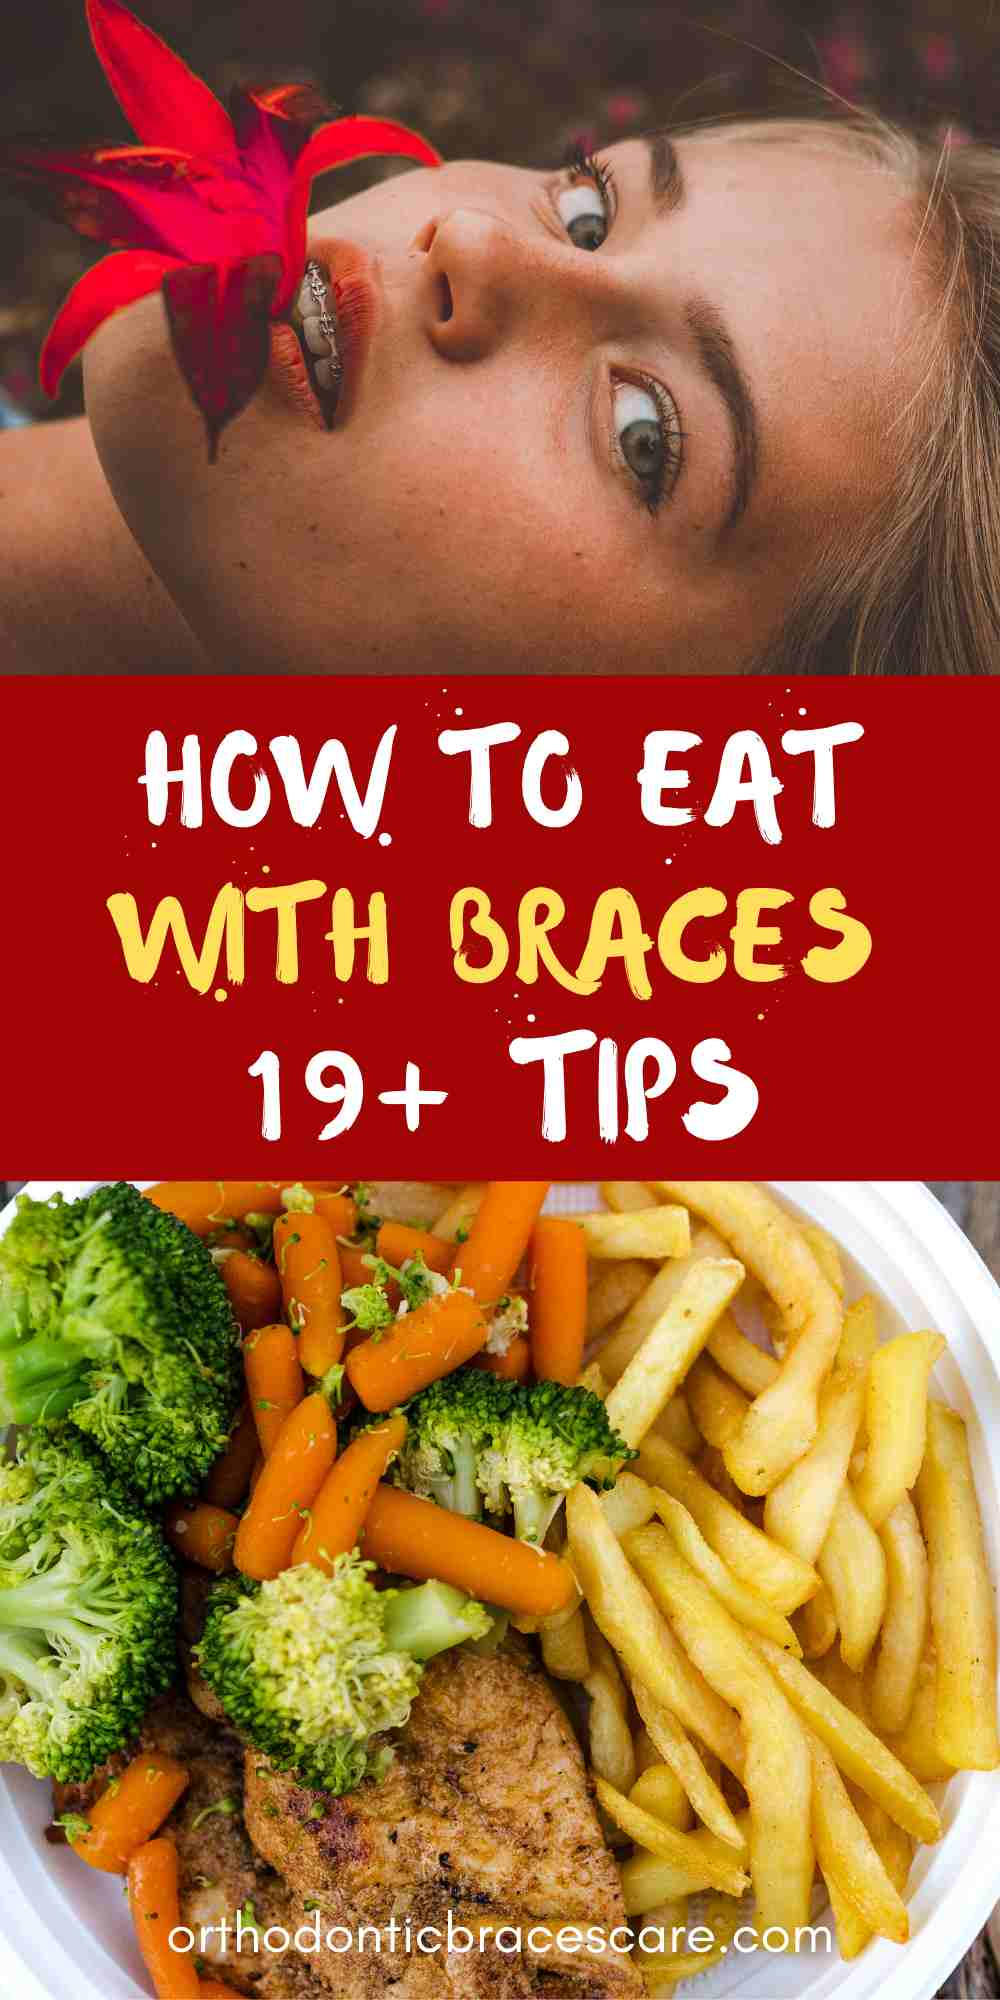 How To Eat And Chew With Braces - Top 19 Simple Tips ...